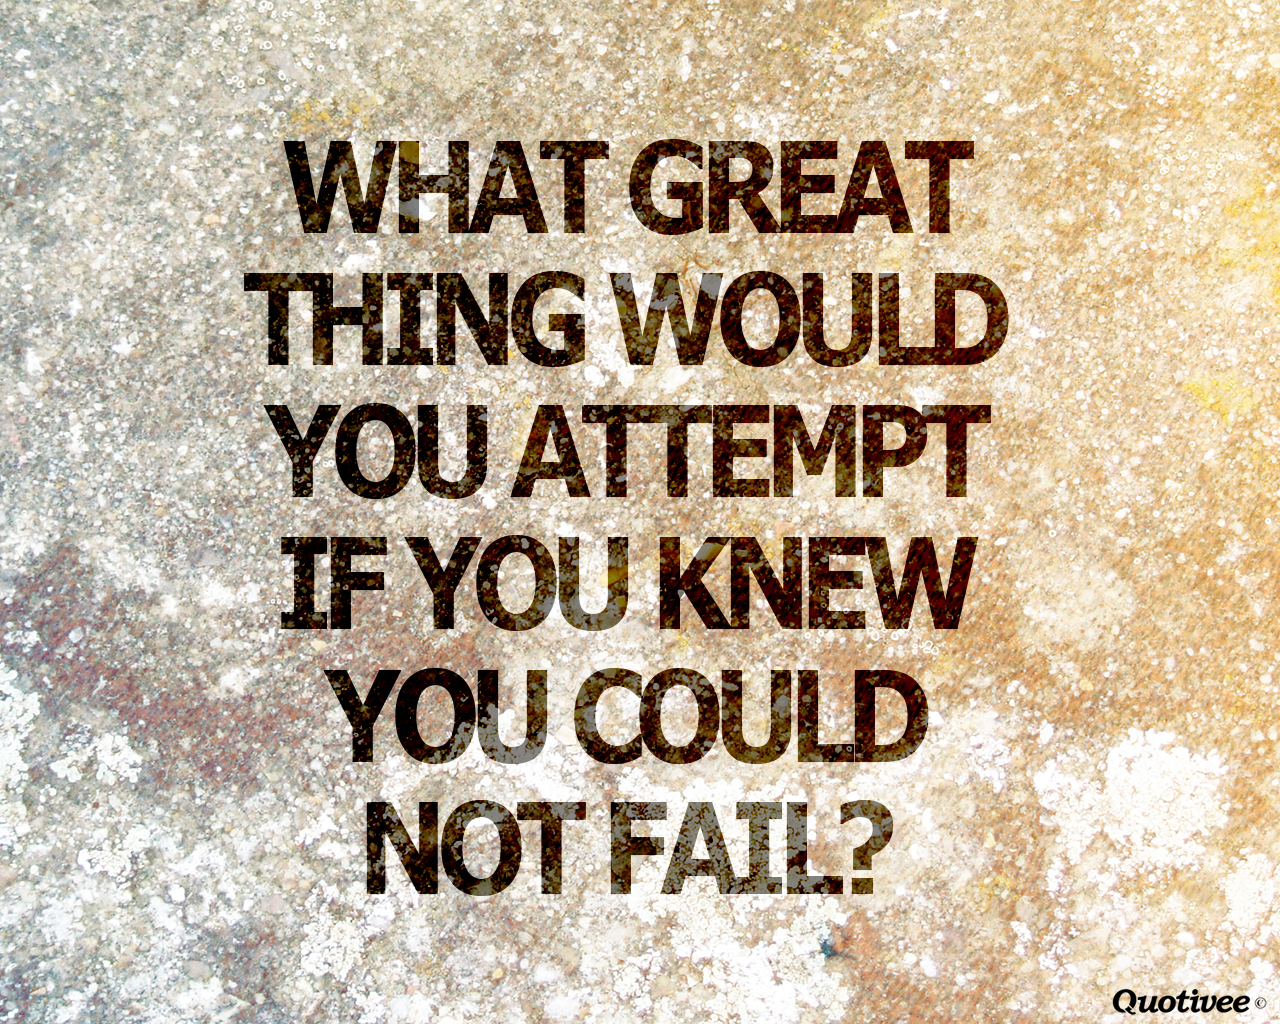 quotivee_1280x1024_0005_What great thing would you attempt  if you knew you could not f